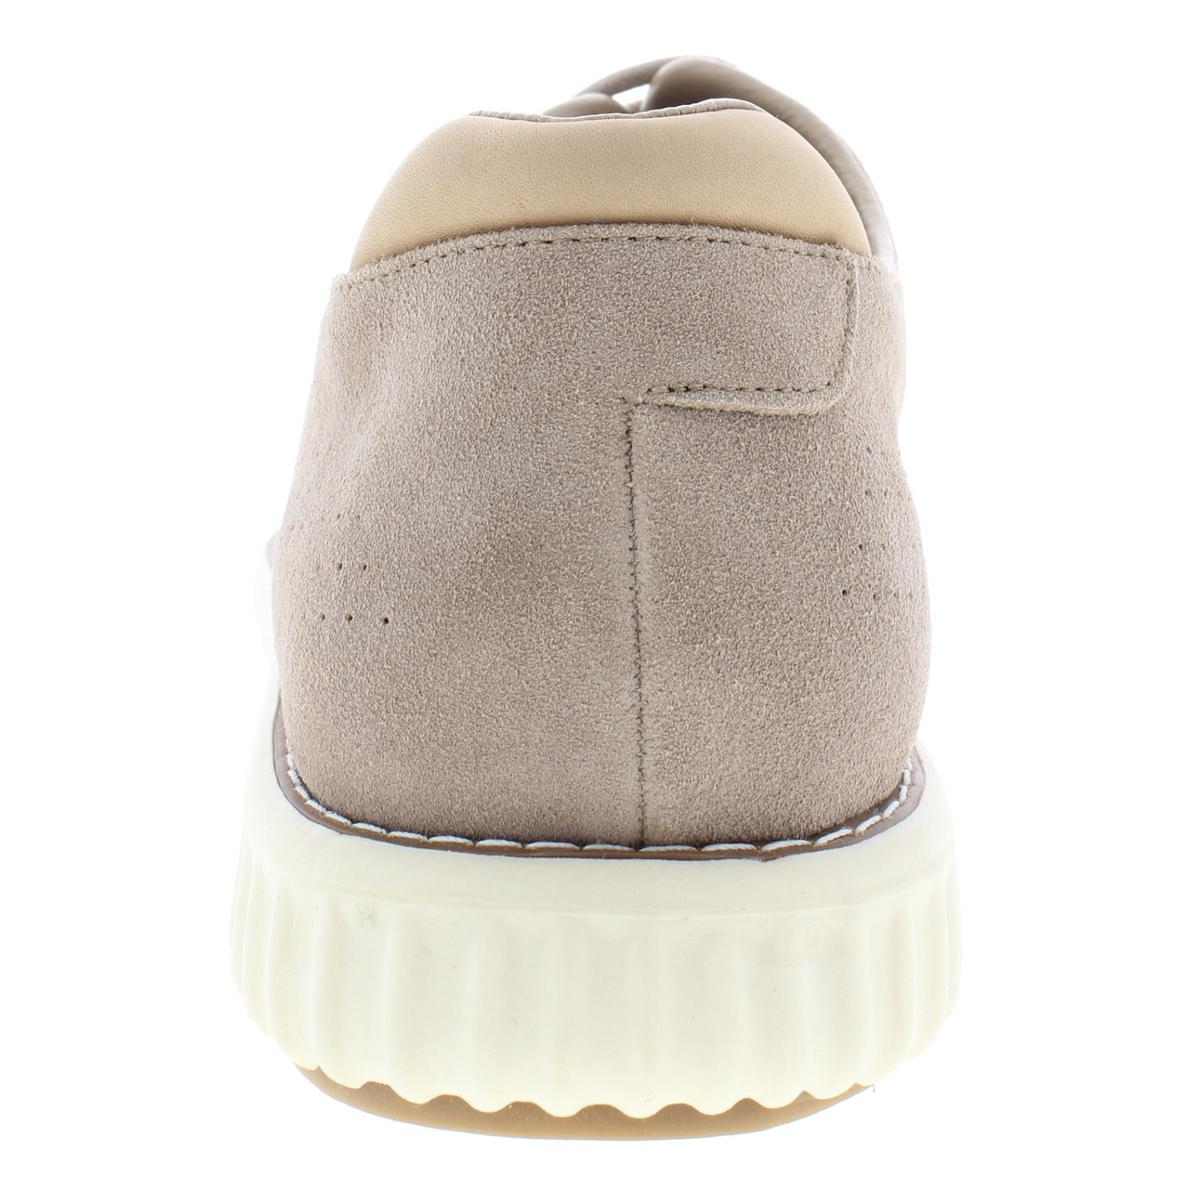 Steve-Madden-Mens-Vaelen-Suede-Perforated-Lace-Up-Oxfords-Sneakers-BHFO-9910 thumbnail 13